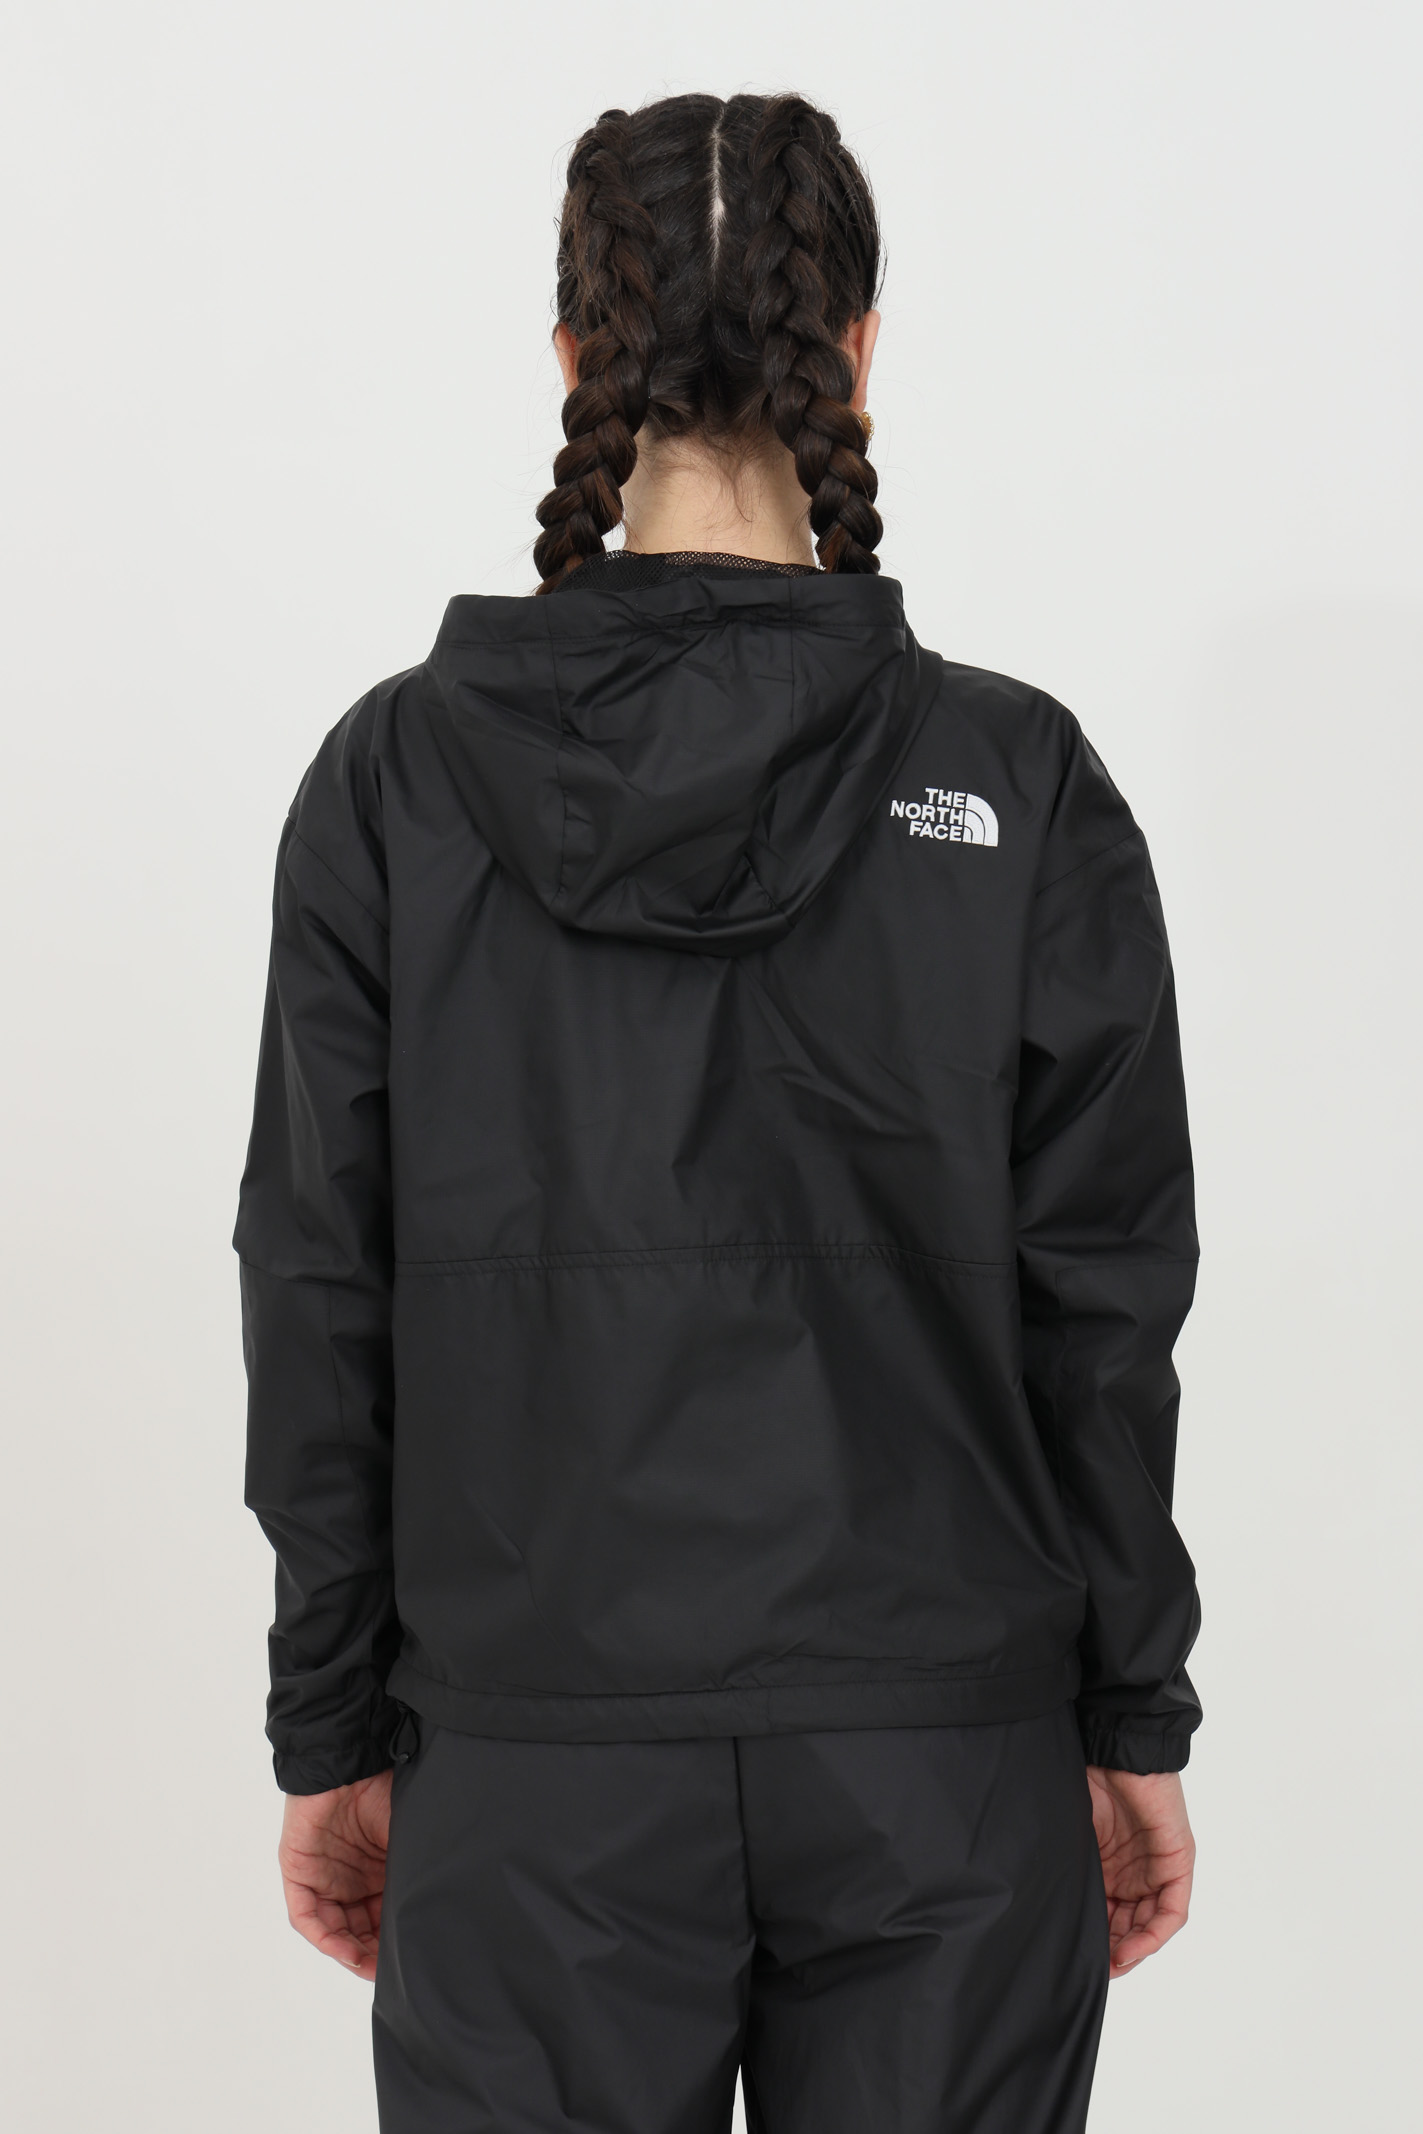 Wind jacket with zip and hood THE NORTH FACE | Jacket | NF0A4C9HJK31JK31